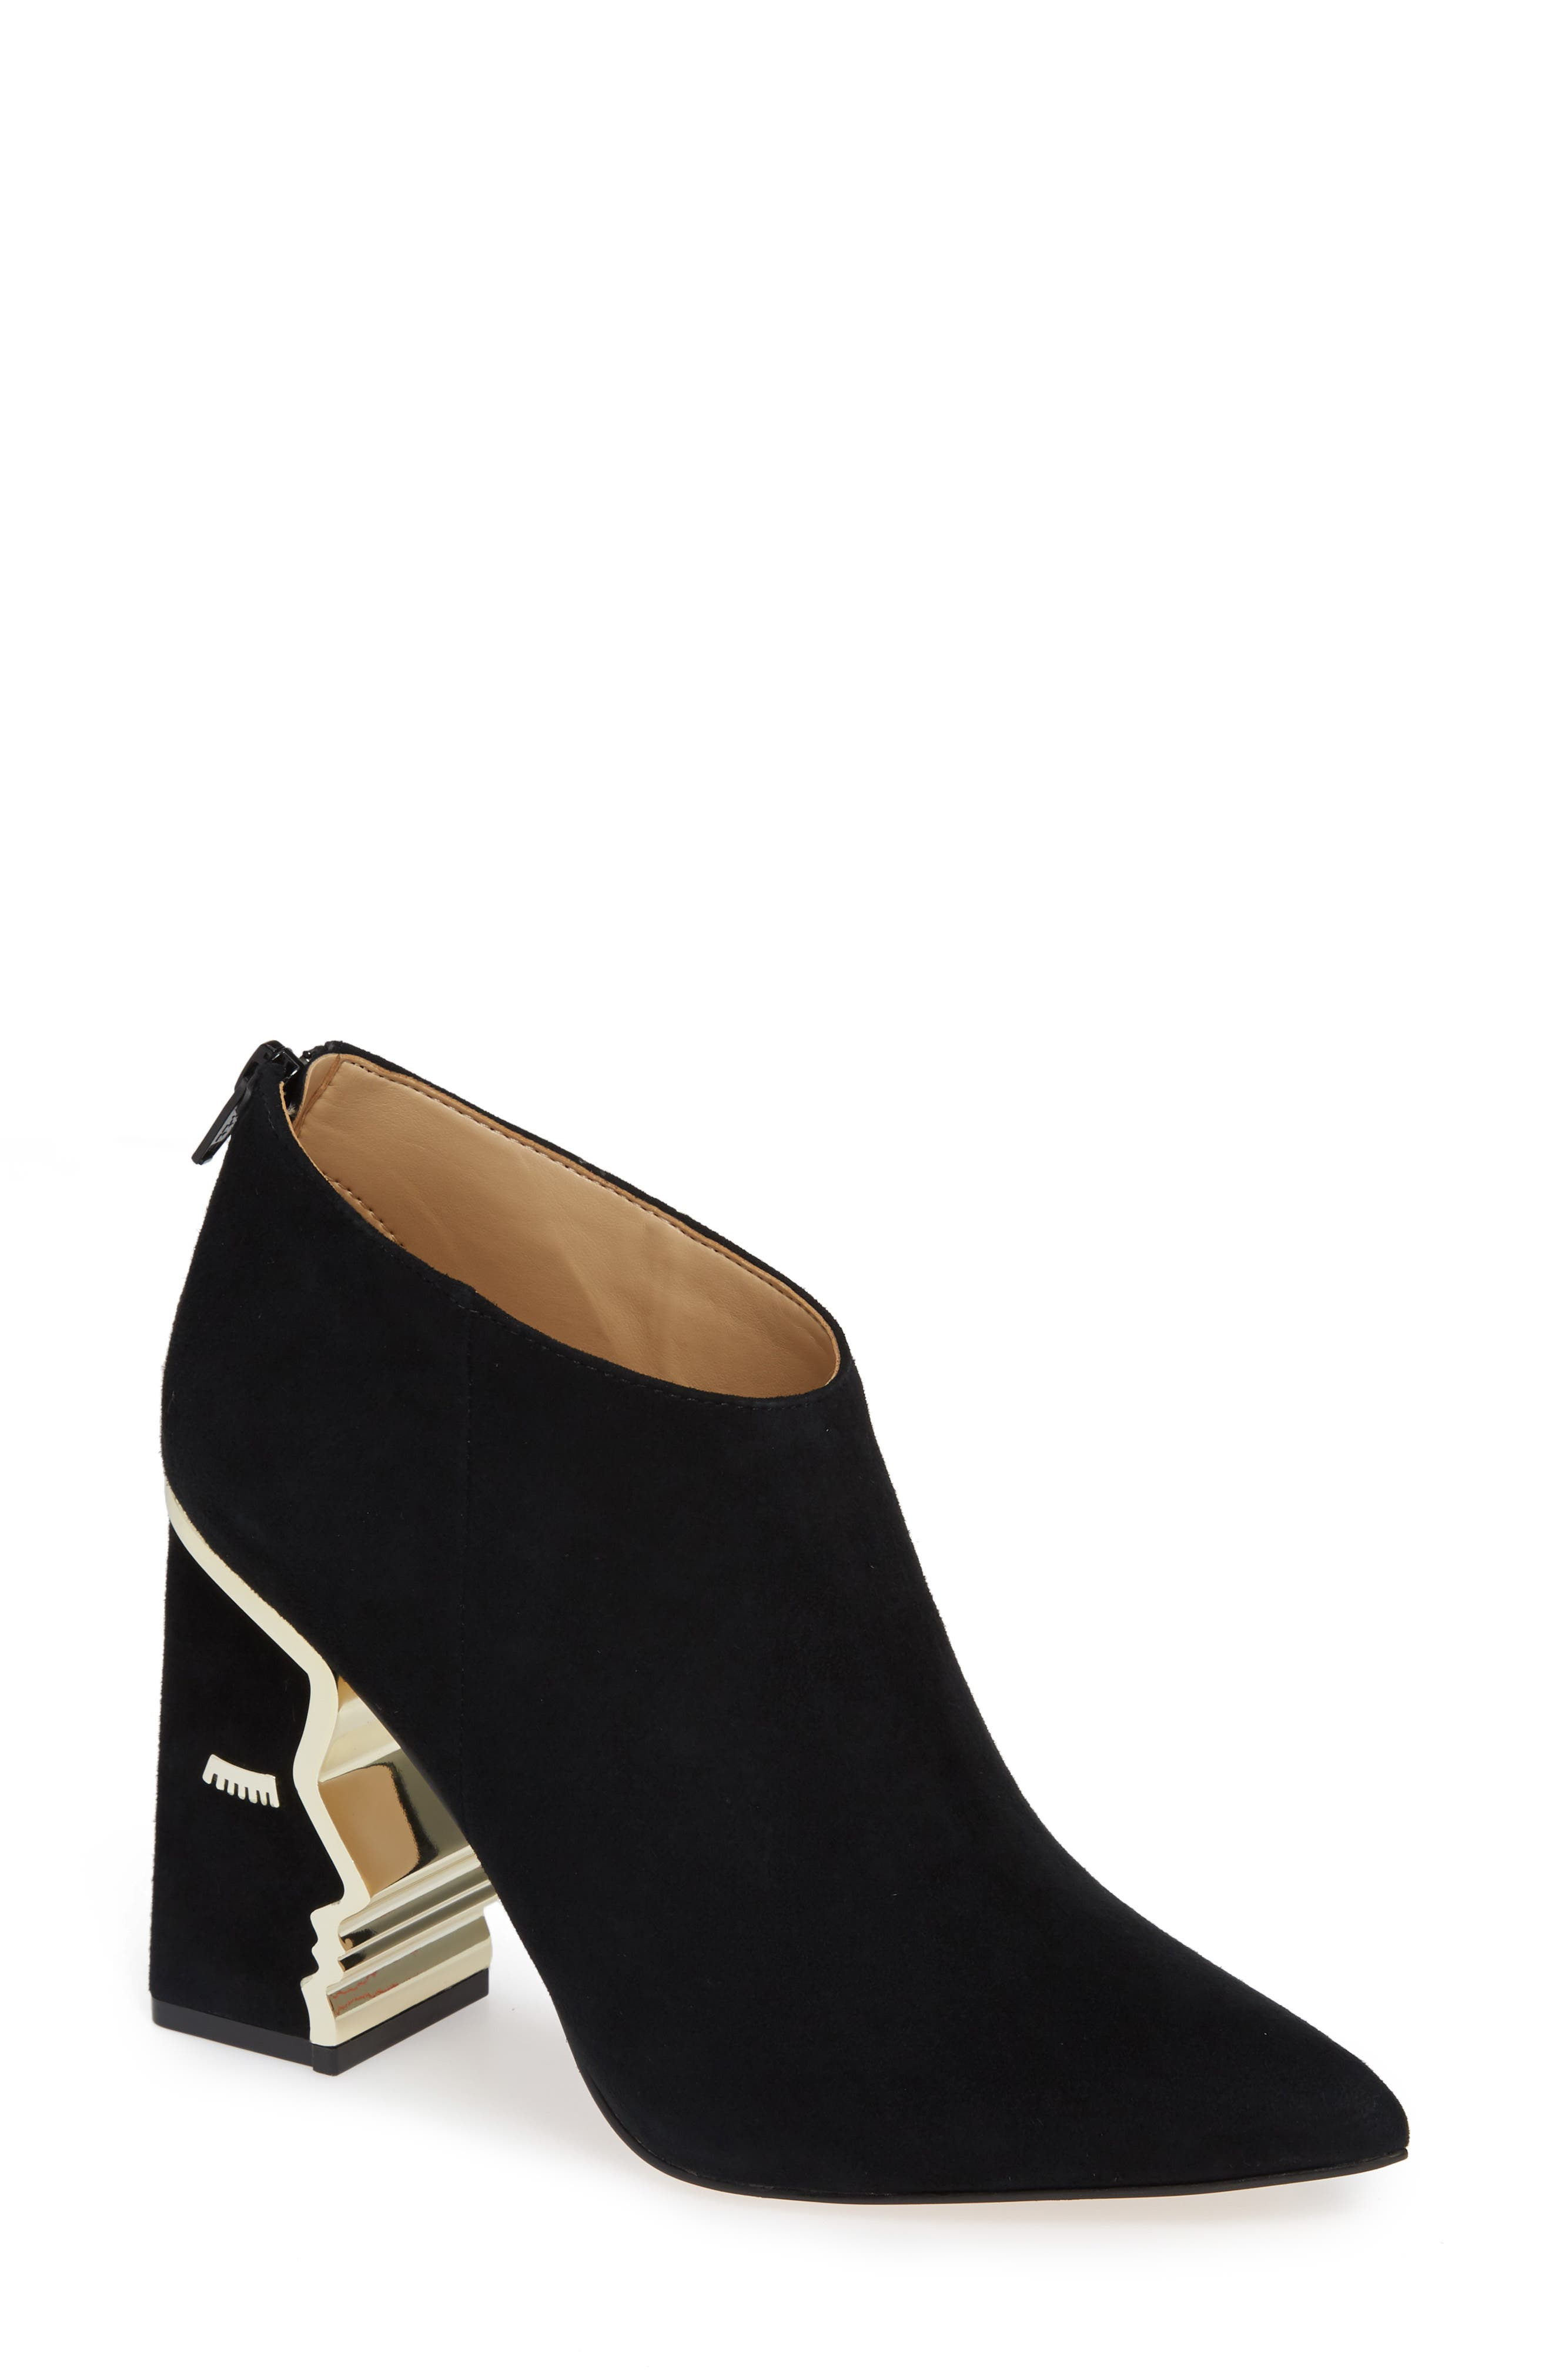 KATY PERRY STATEMENT HEEL BOOTIE